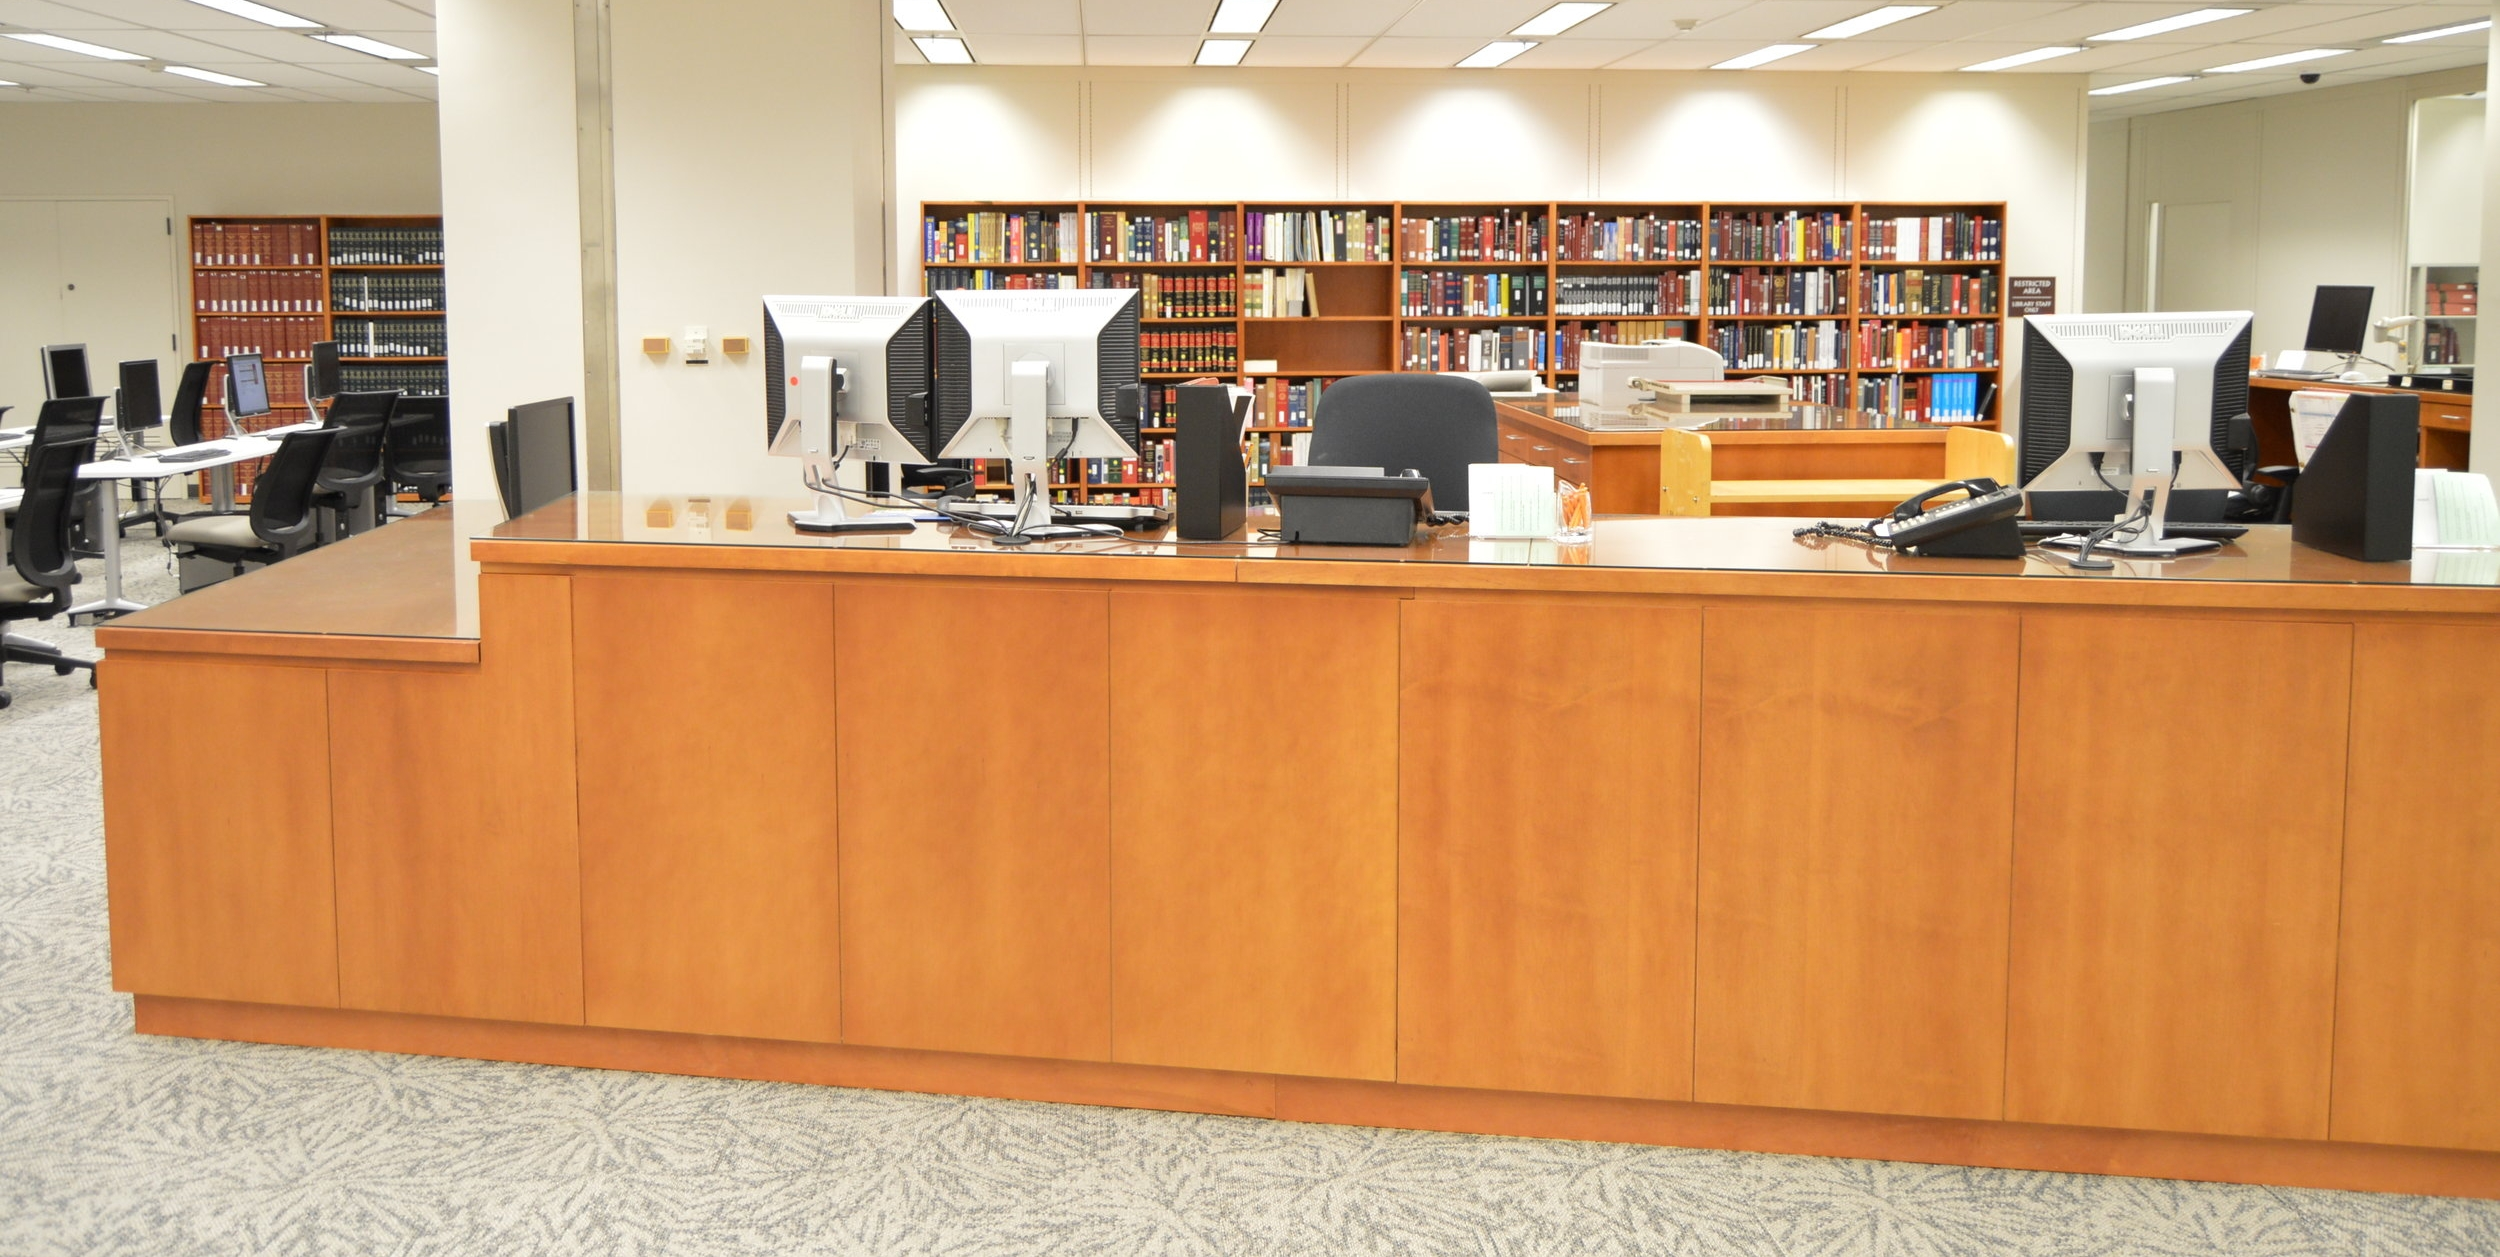 -    Whether you plan to visit the Law Library Reading Room to conduct research or attend an event or tour, the Law Library encourages you to prepare for your visit by reviewing the Library's information, policies and procedures.